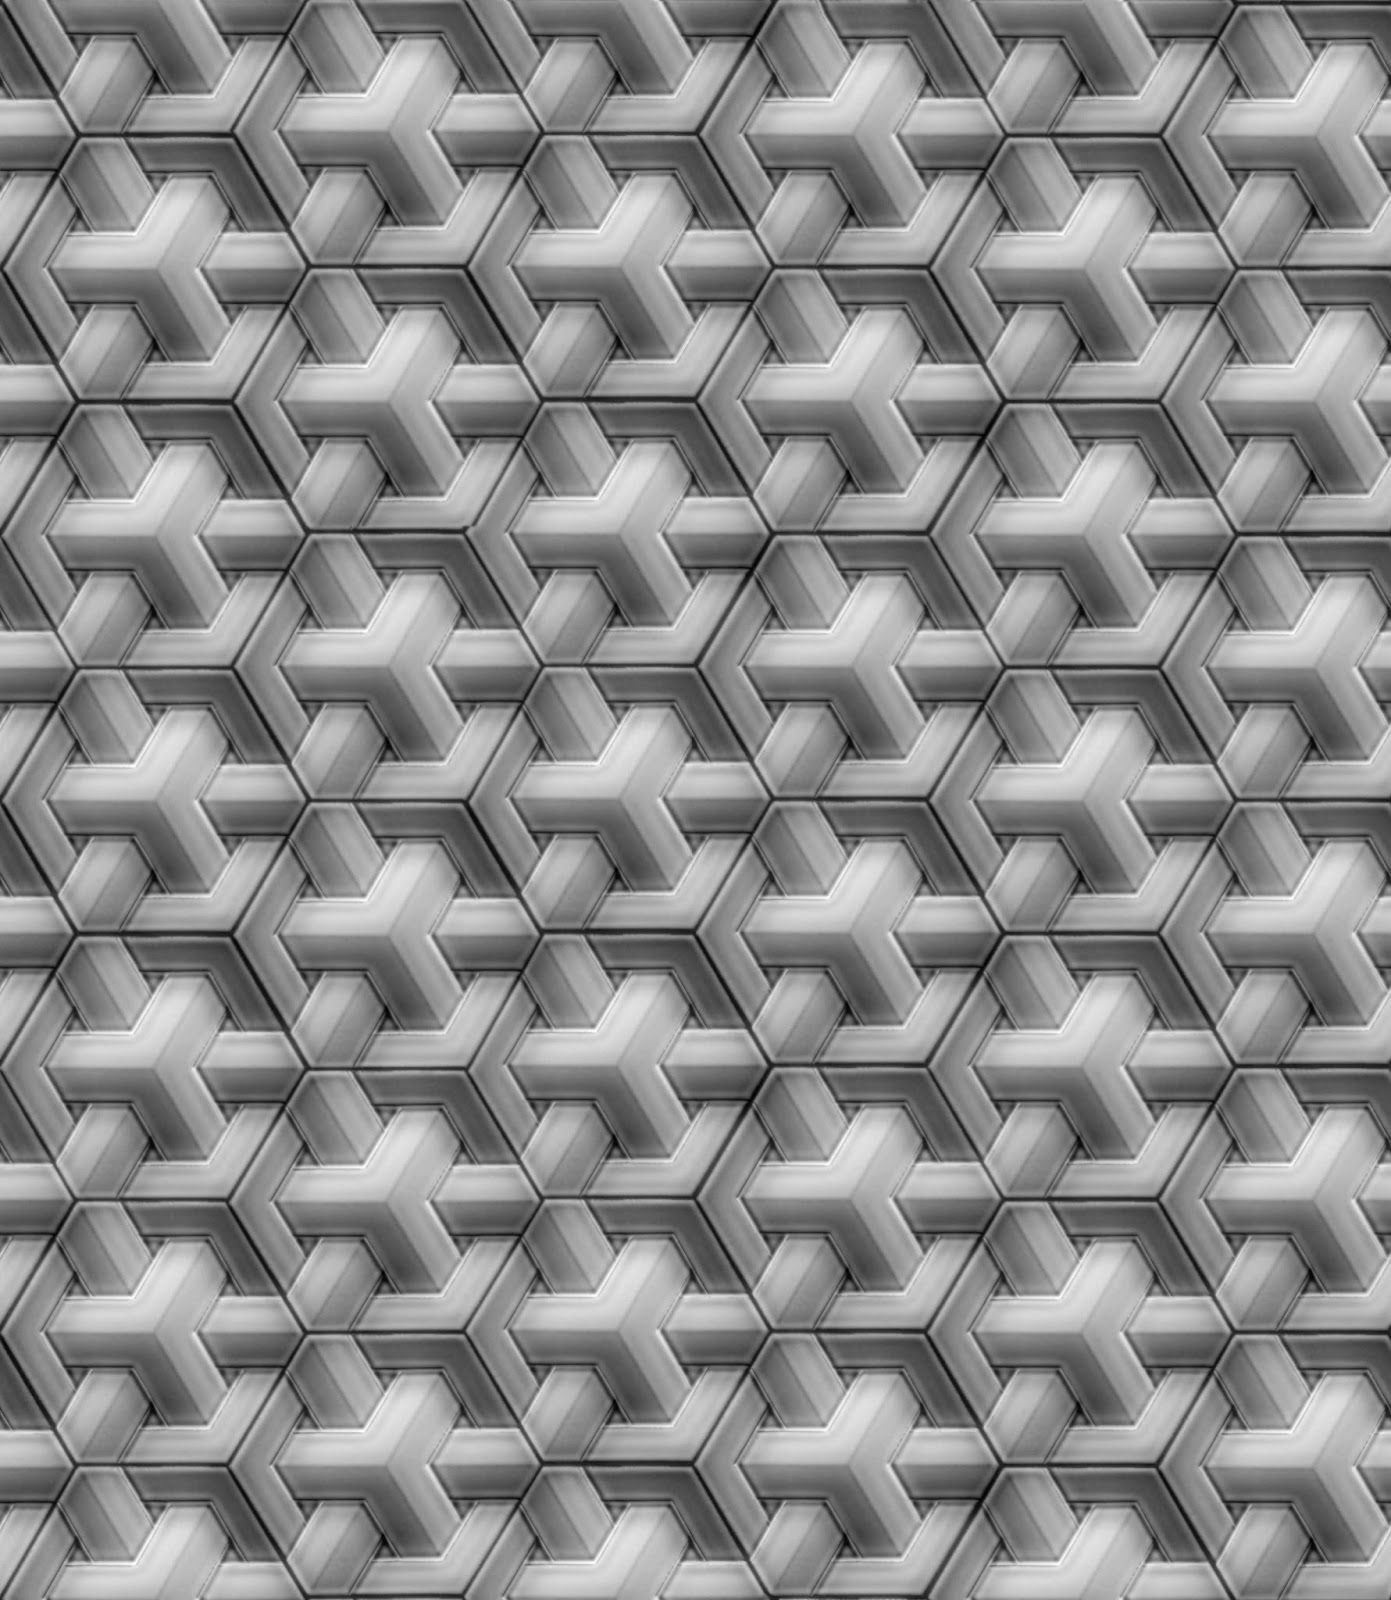 Texturise Free Seamless Tileable Textures and Maps Textures with Bump  Specular and Displacement Maps forSeamless Stone Wall Tiles Texture    Maps    Texturise Free  . Free Wall Tile Texture. Home Design Ideas